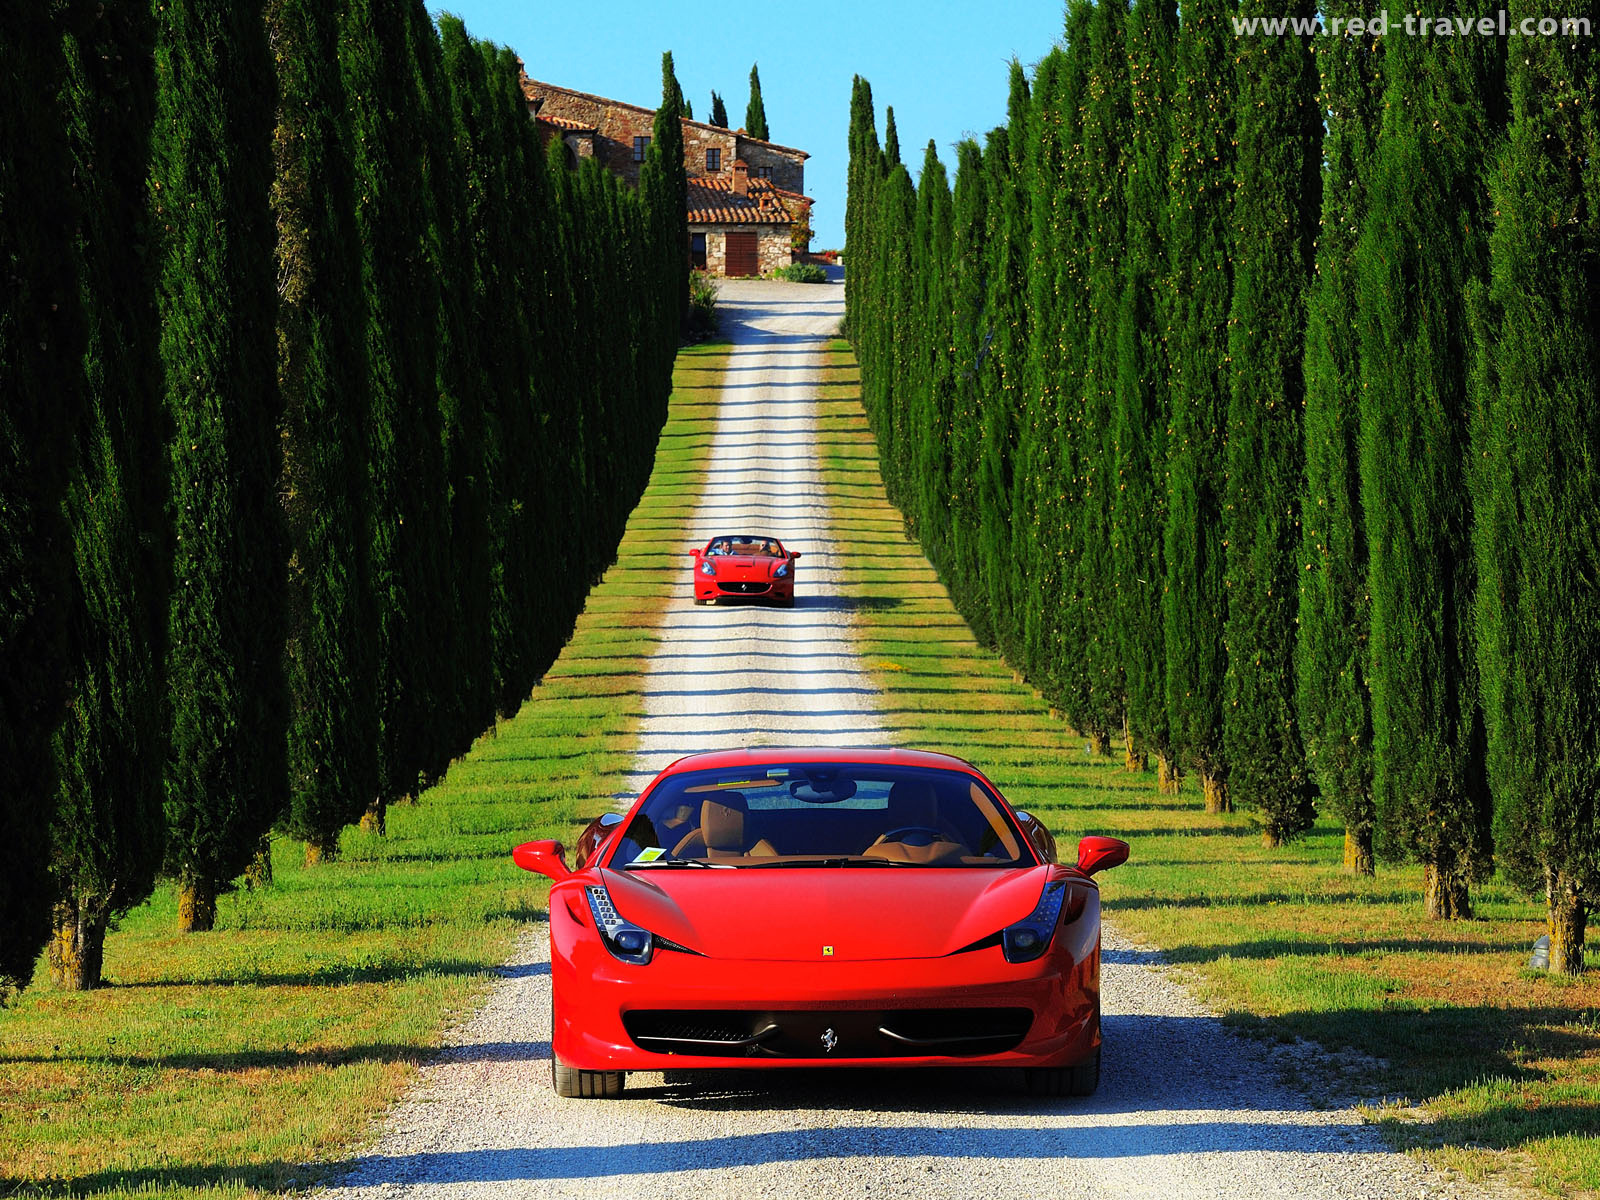 TOSCANA IN FERRARI - Each journey is a sublime blend of art, fashion, architecture, gastronomy and spectacular scenery.Our guests will feel part of a real Ferrari team, enjoying the opportunity to personally drive the very latest models. Travelling for kilometres, accelerating through the steep, winding roads of Lazio, Umbria and Tuscany, along the route of the legendary Mille Miglia race, putting their driving skills to the ultimate test.As a relaxing contrast to the exhilaration of driving a Ferrari, our journeys include wellness programmes at the Fonteverde Tuscan Resort & Spa, a world-class spa hotel located in the midst of the rolling hills of the Val d'Orcia.